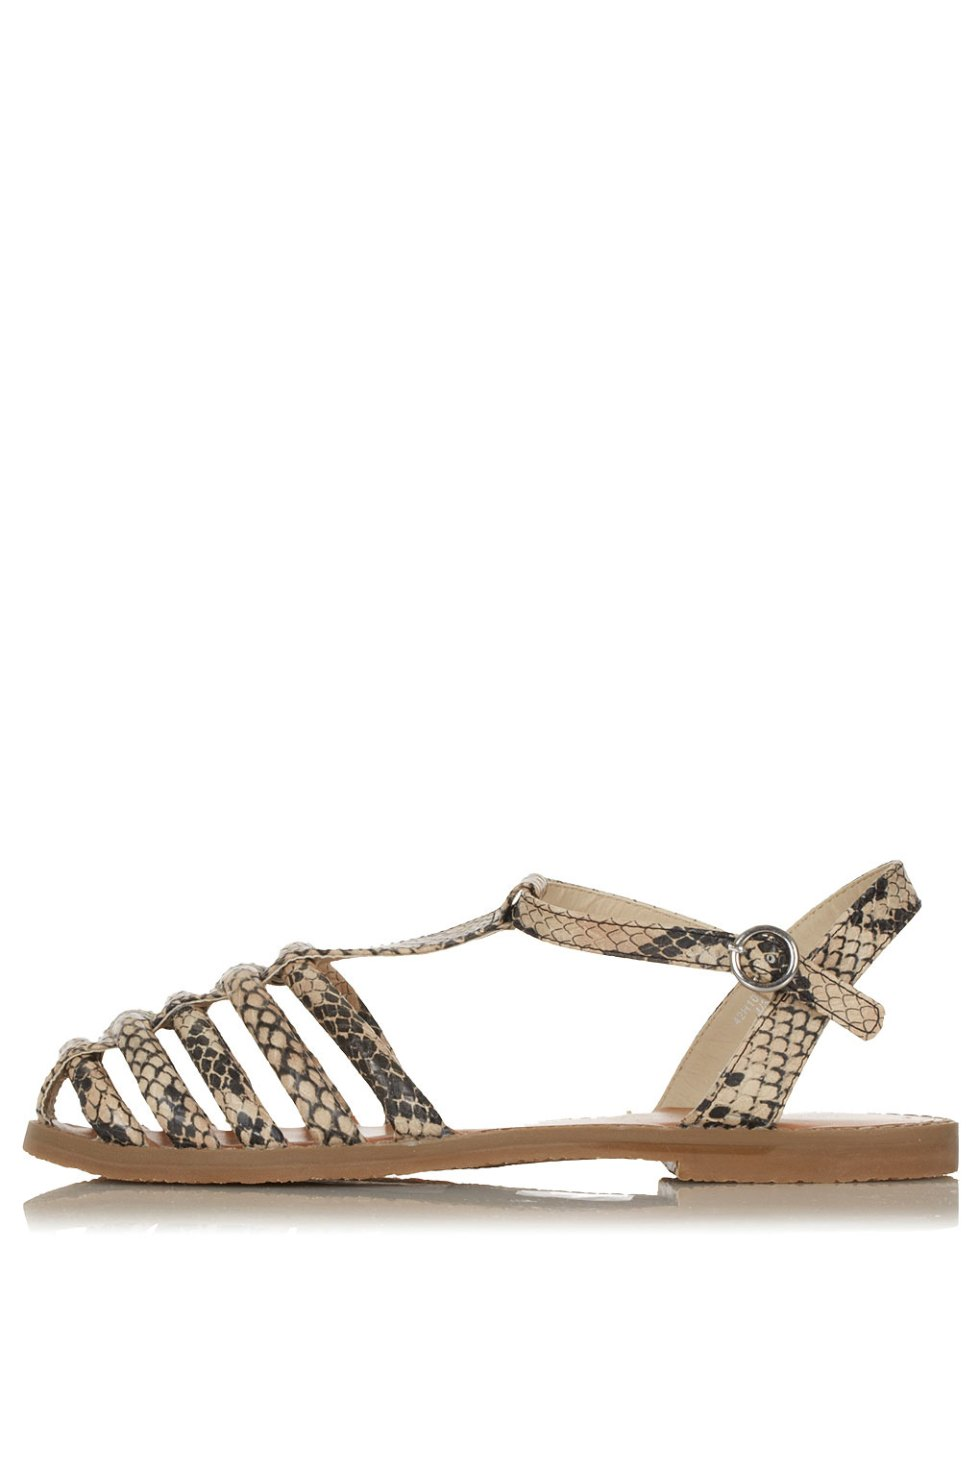 Topshop closed toe sandals, £26, topshop.com BUY ME HERE!